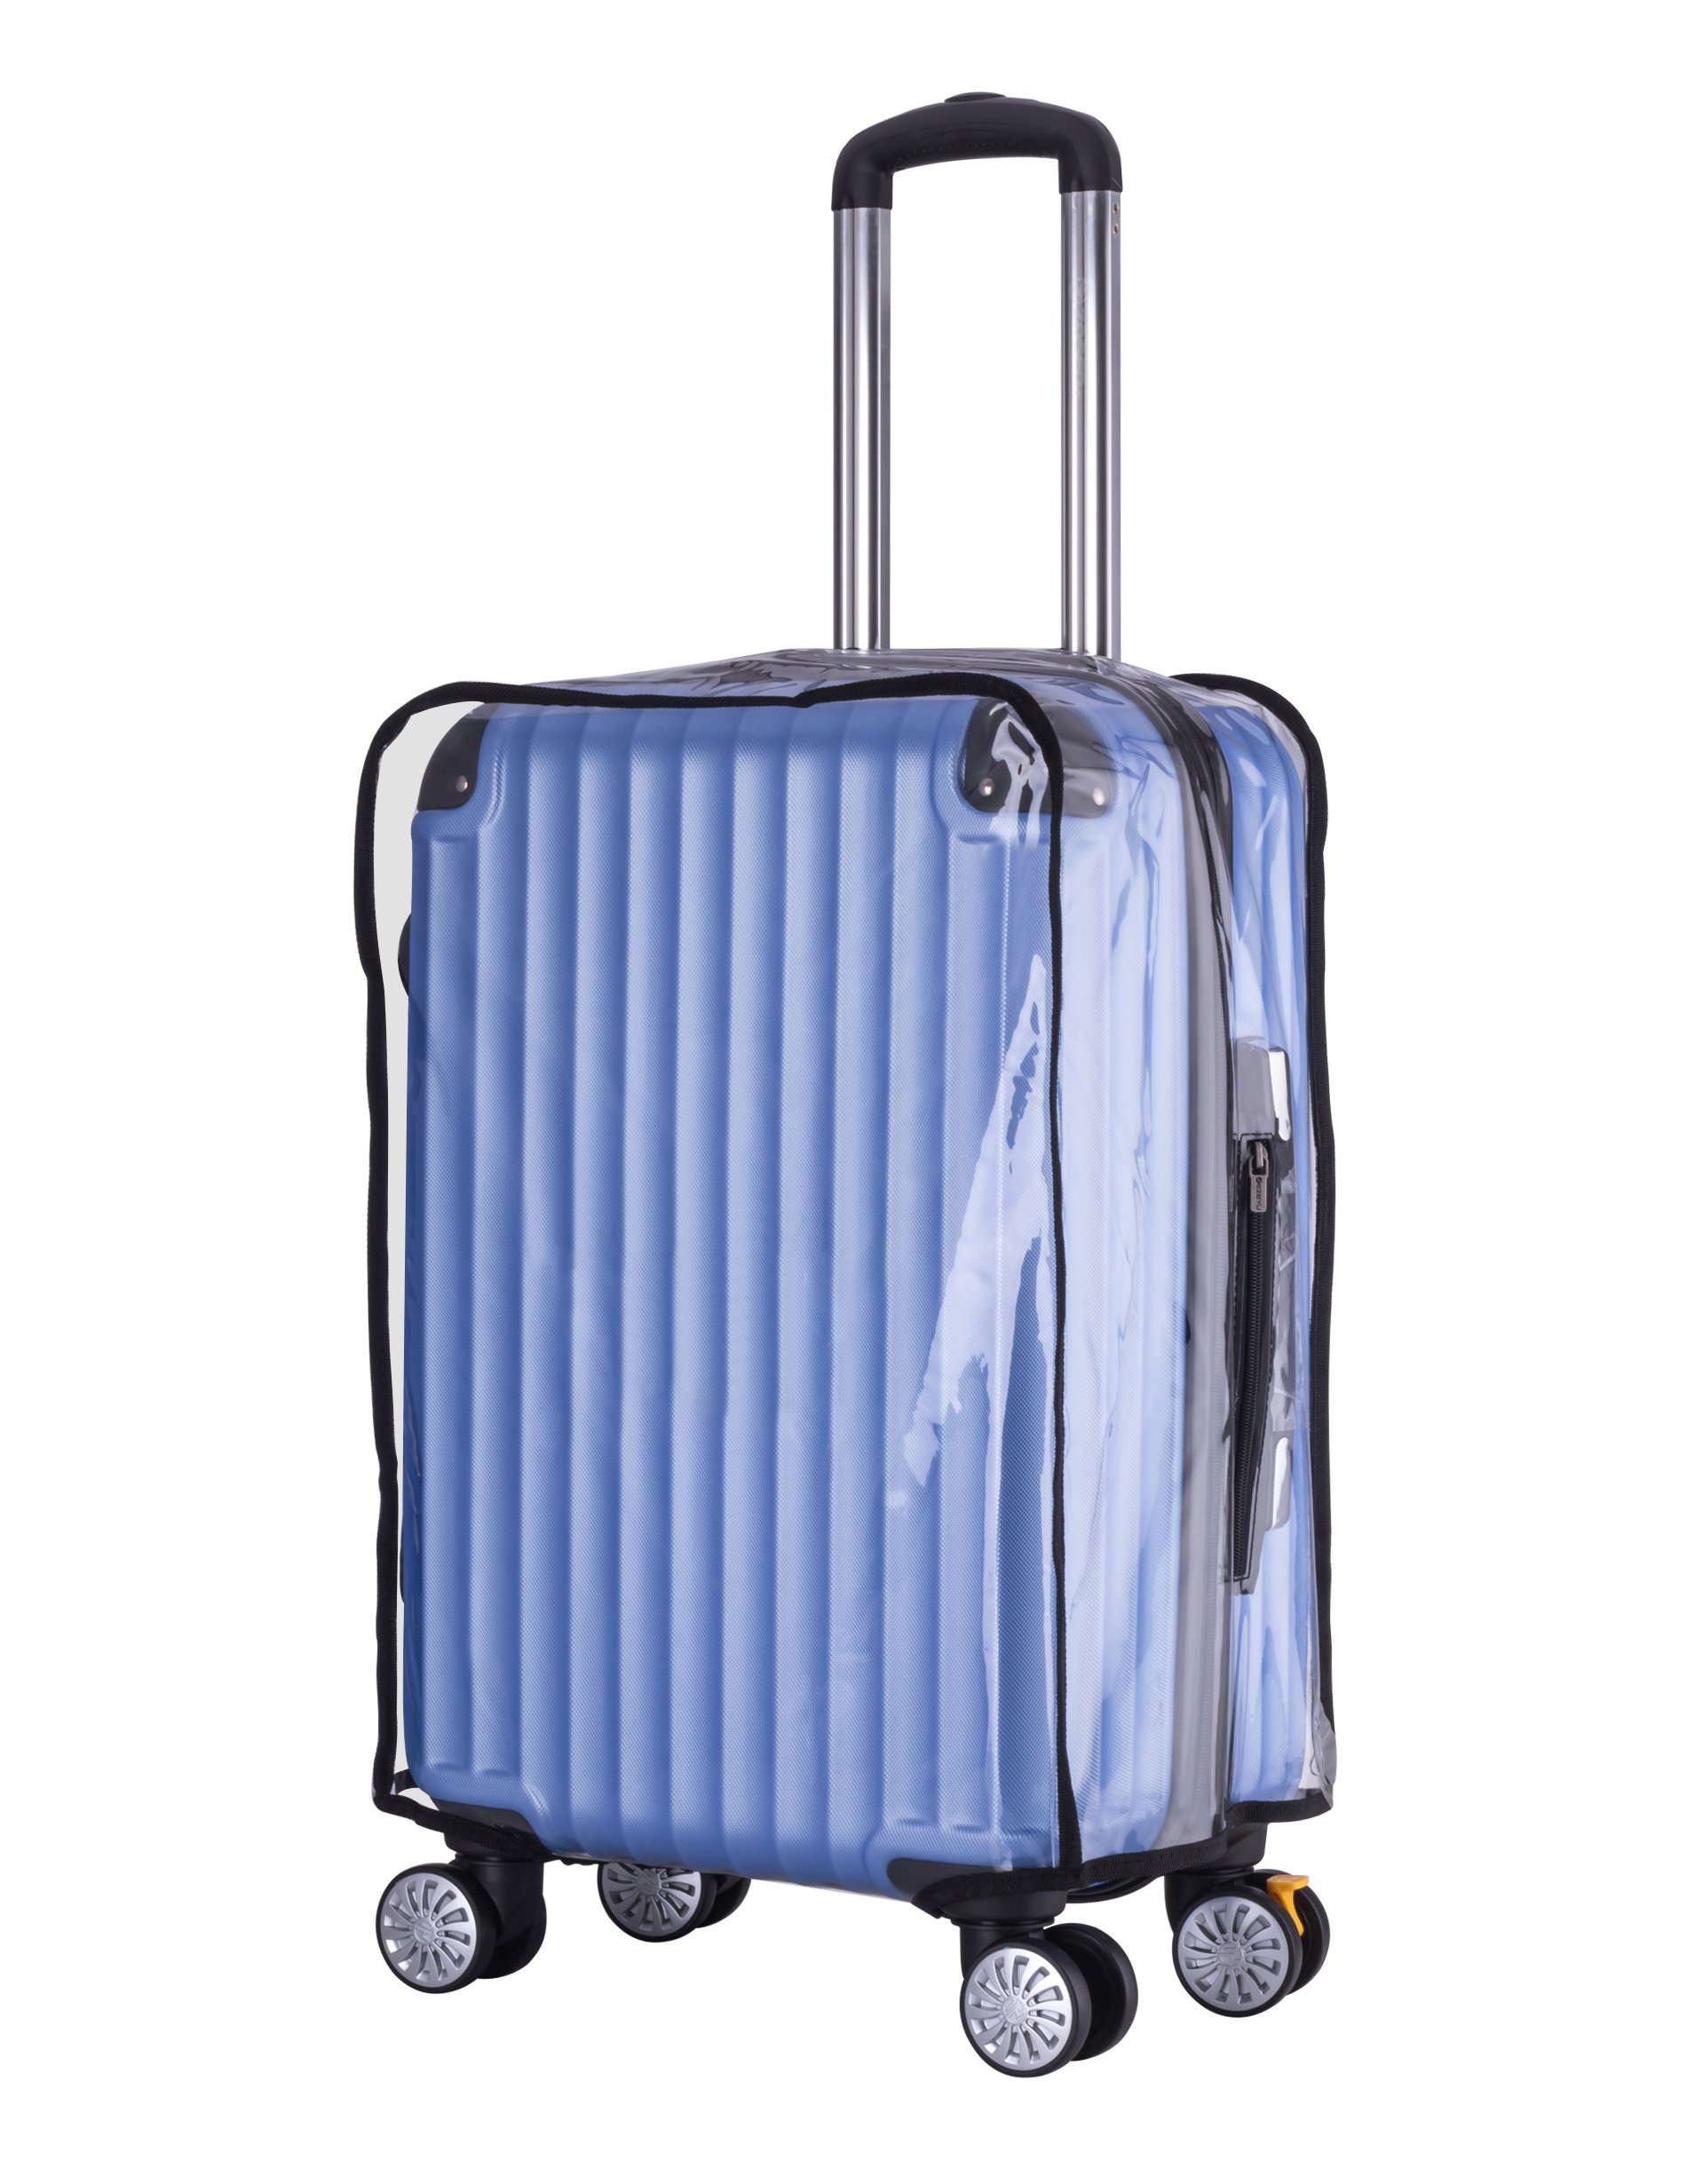 "Holly LifePro Travel Waterproof Luggage Clear PVC Cover Protector Suitcase Fits Most 20'' to 30"" Luggage (26'')"